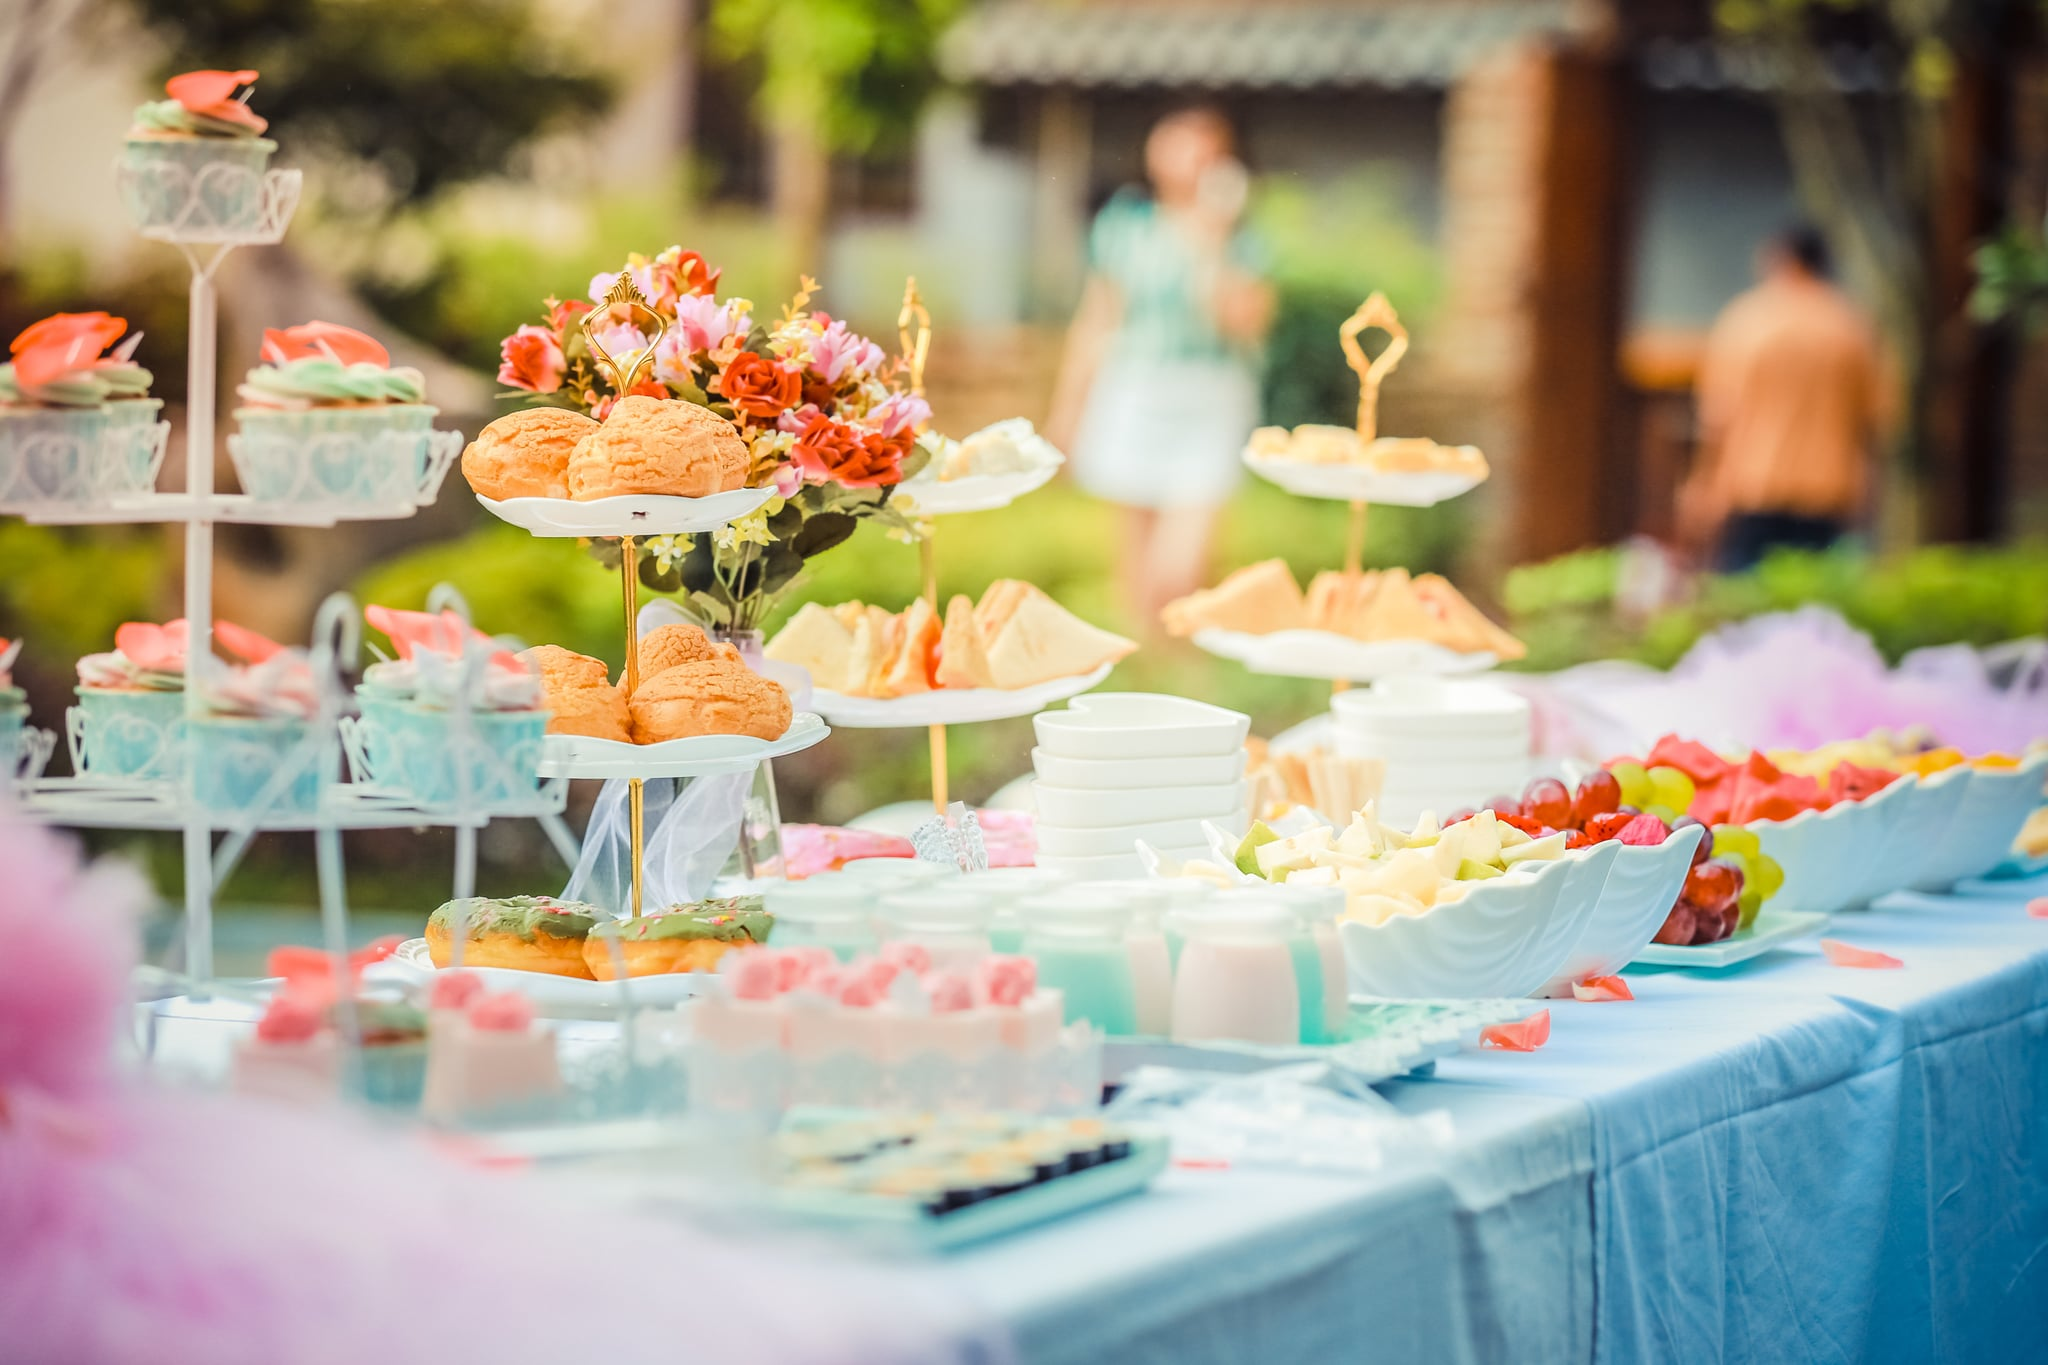 Why You Should Have Multiple Baby Showers